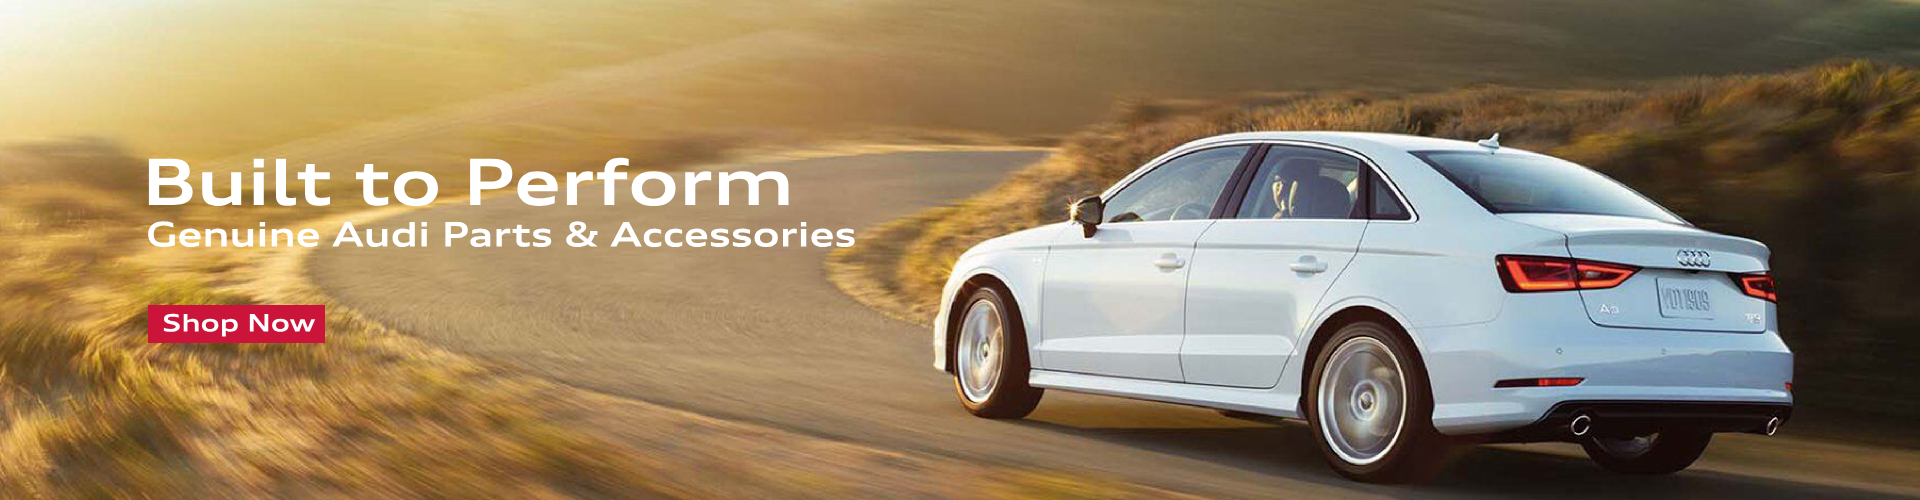 Audi parts and accessories